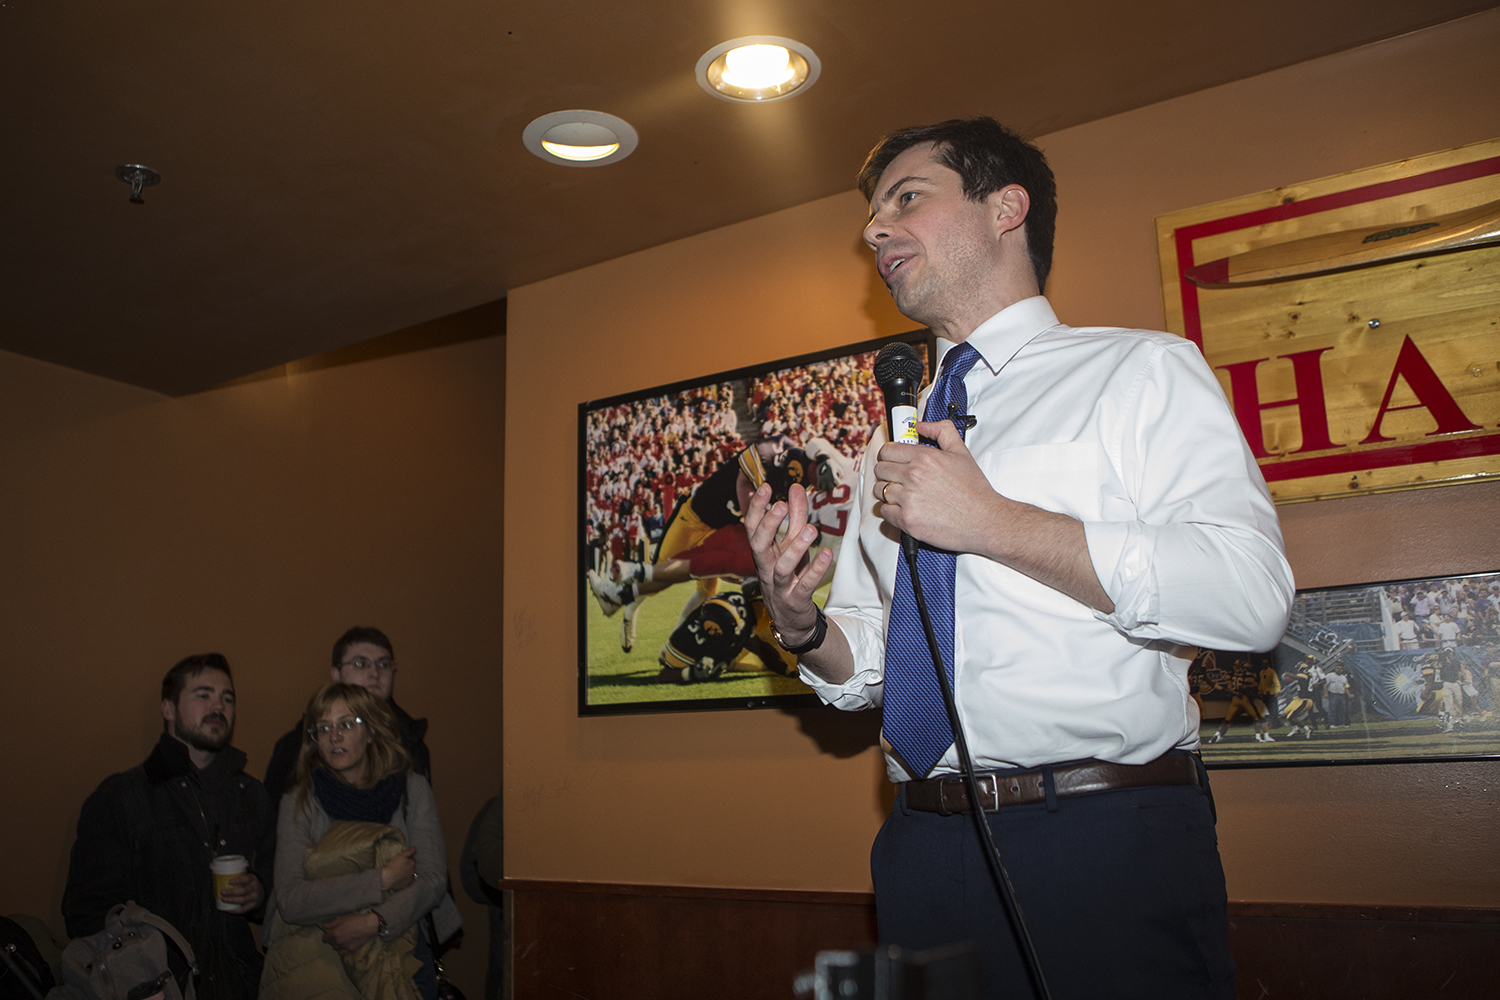 Democratic presidential-nomination candidate Pete Buttigieg, mayor of South Bend, Indiana, addresses the audience during his visit to Airliner in Iowa City on March 4, 2019.